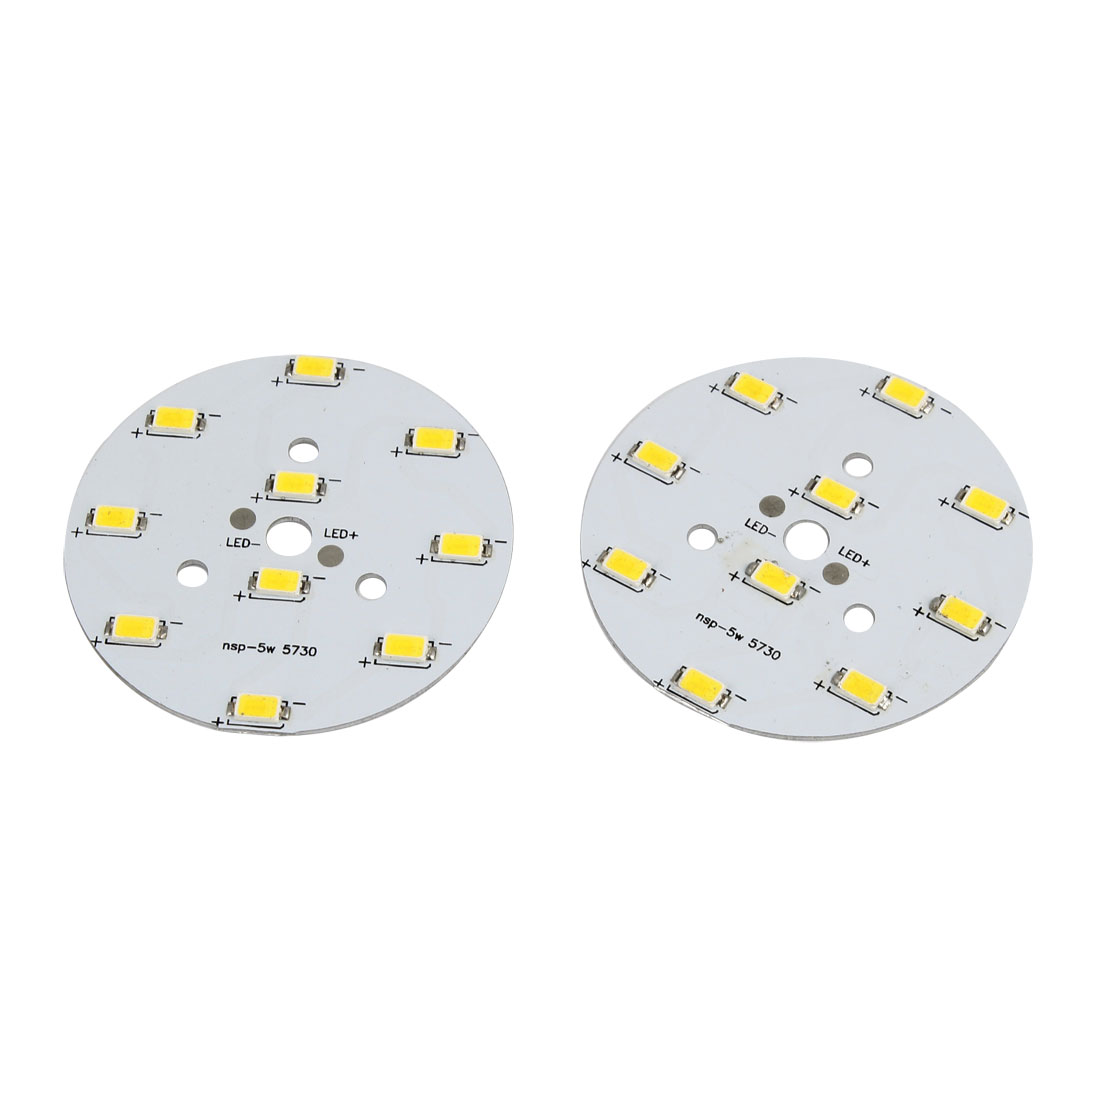 2 Pcs DC 12-18V 5W Warm White Light High Power 1210 SMD 10 LED Lamp Emitter